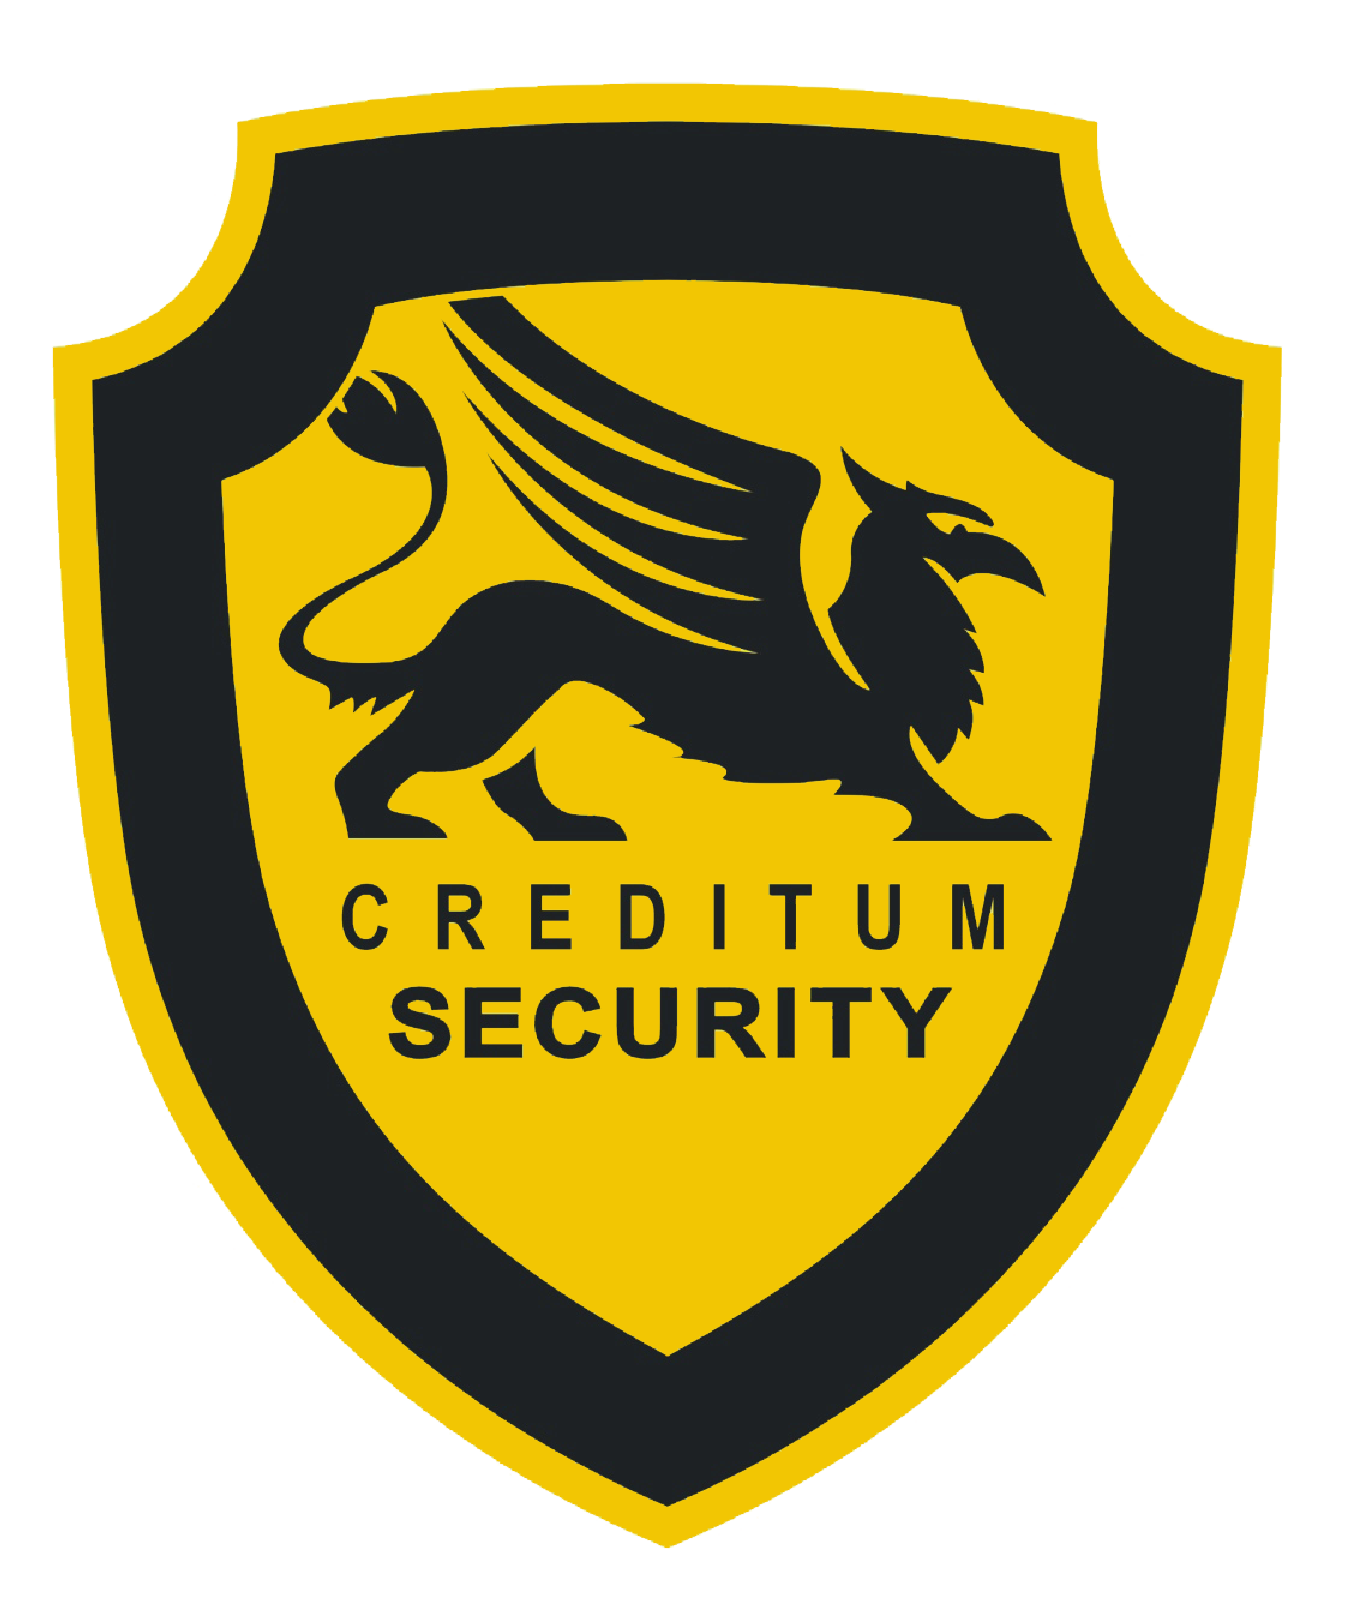 CREDITUM SECURITY